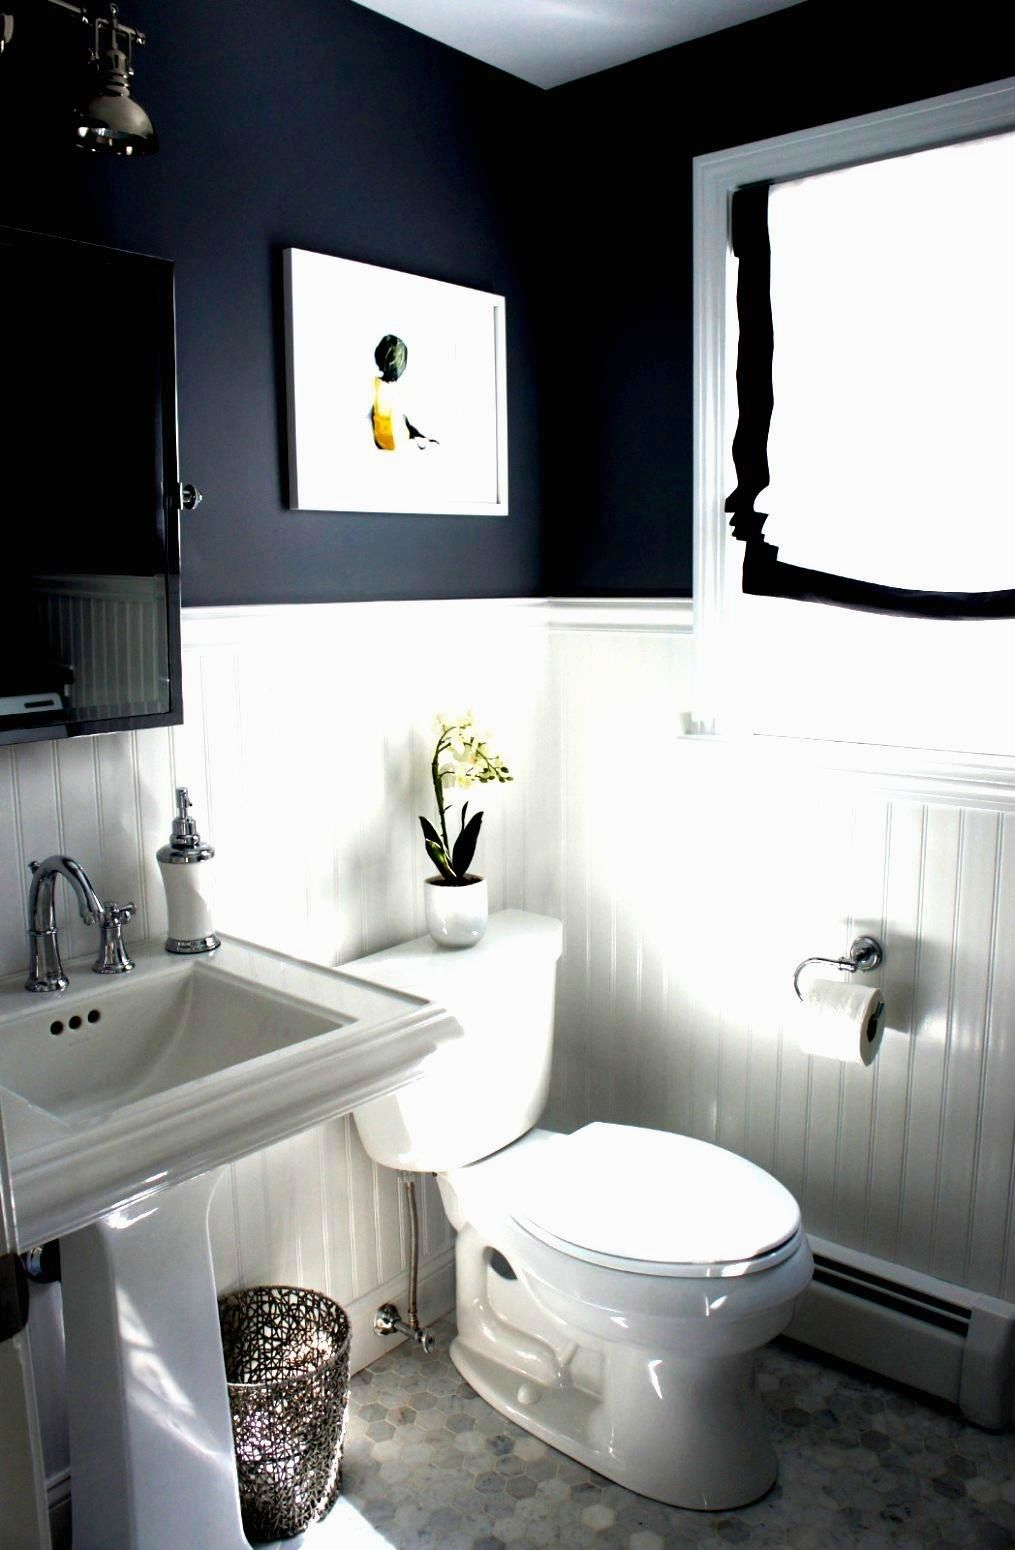 terrific bathroom vanities online ideas-Elegant Bathroom Vanities Online Image